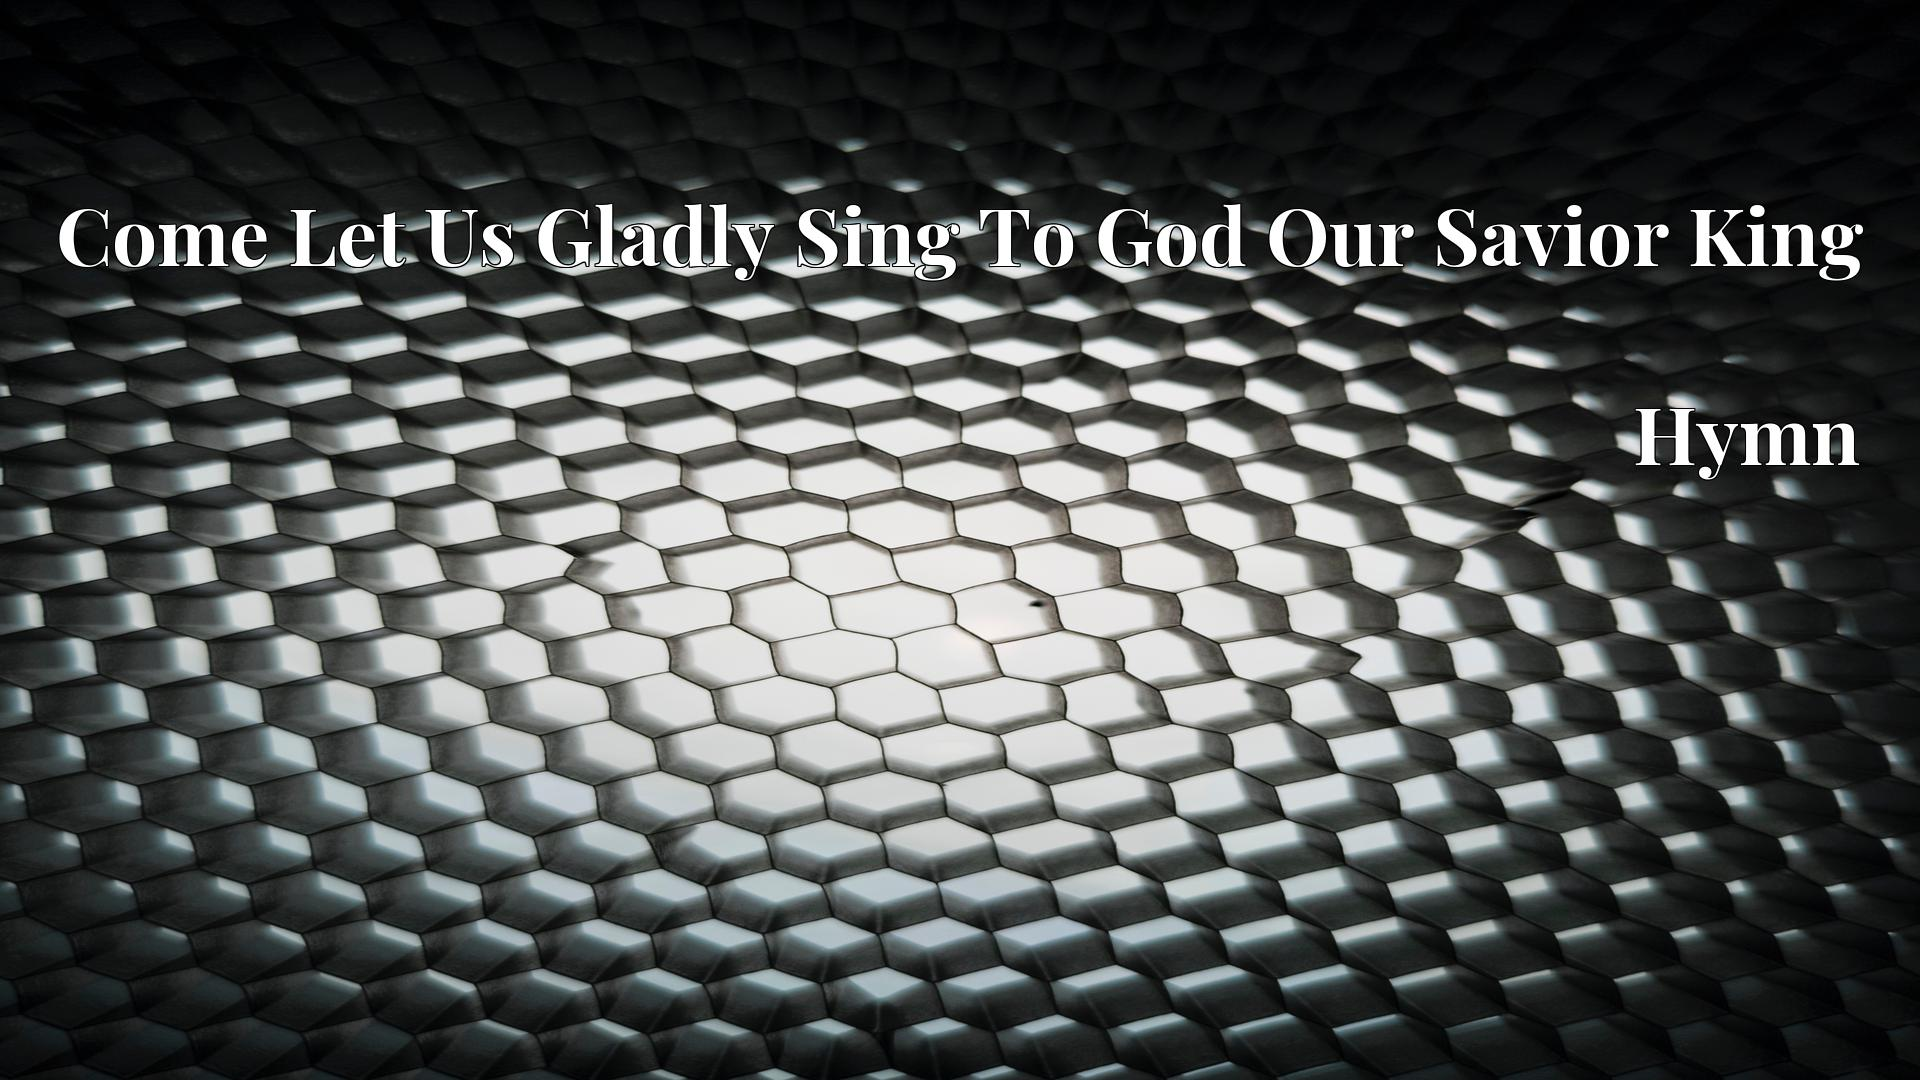 Come Let Us Gladly Sing To God Our Savior King - Hymn